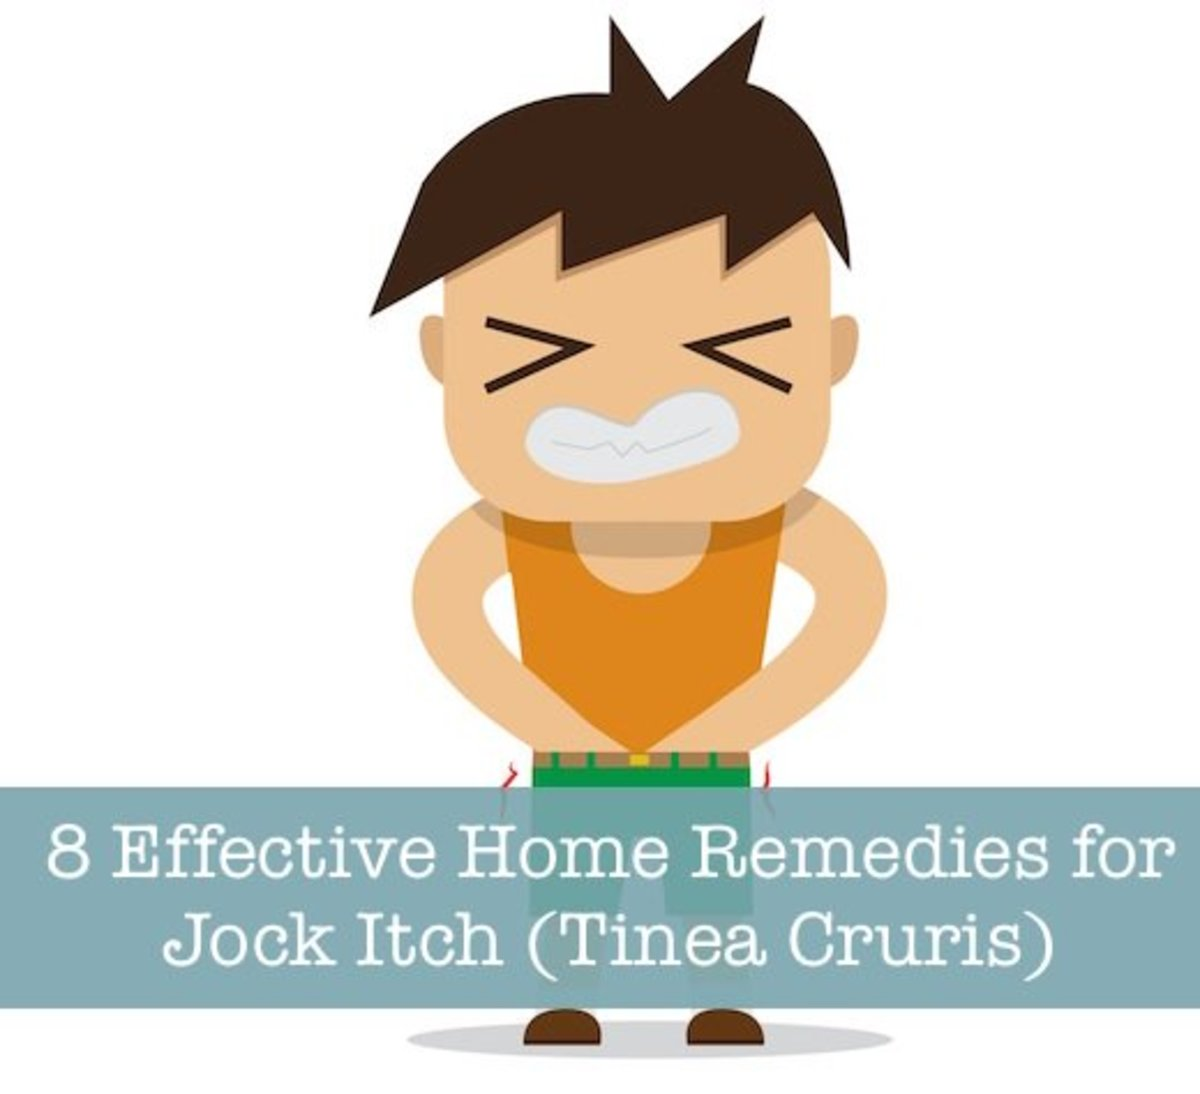 8 Effective Home Remedies for Jock Itch (Tinea Cruris)